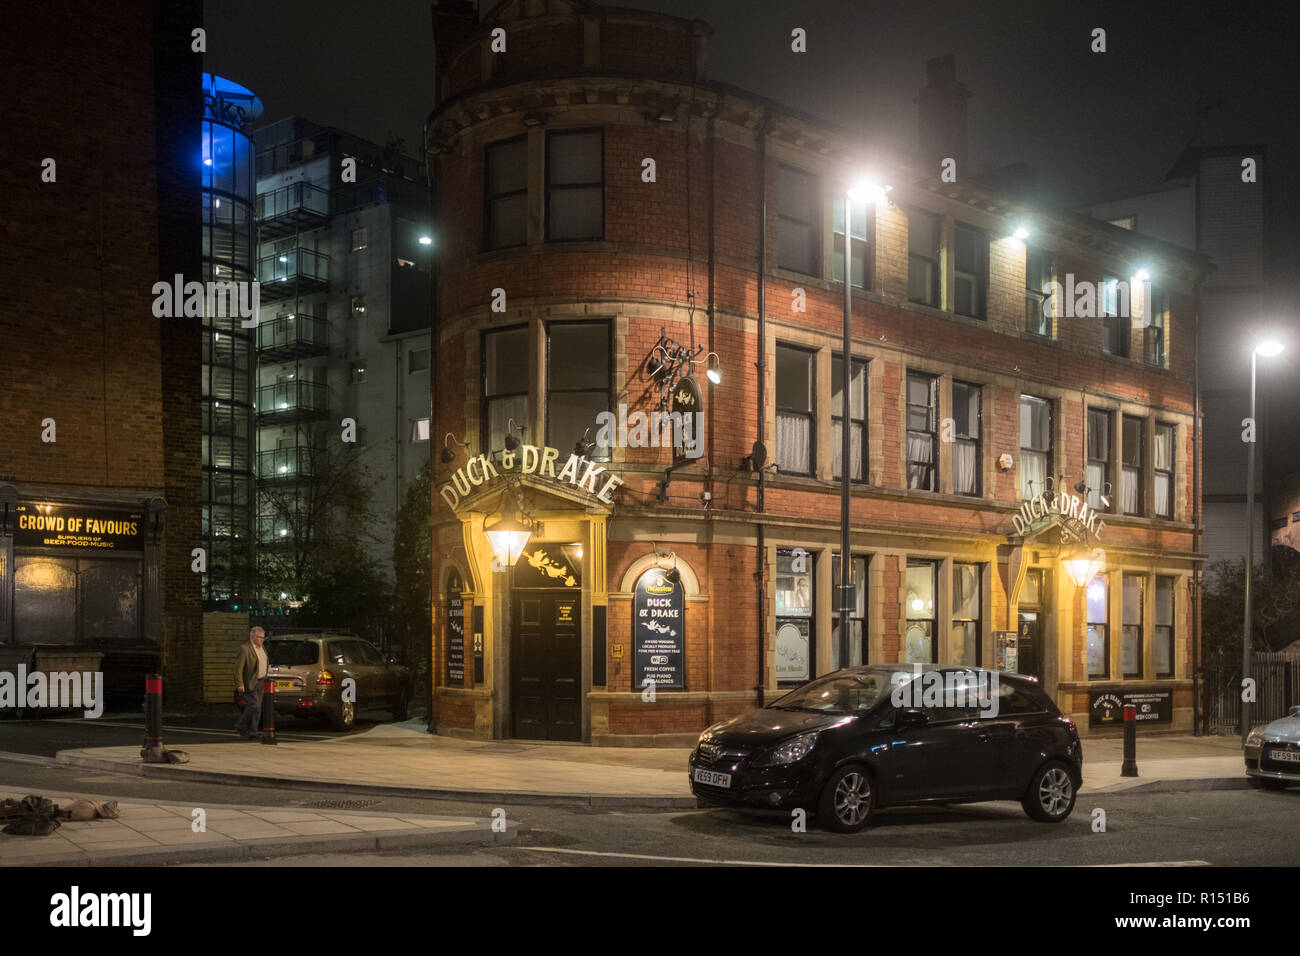 Duck & Drake Pub in the Kirkgate area in the city center of Leeds by night - Stock Image